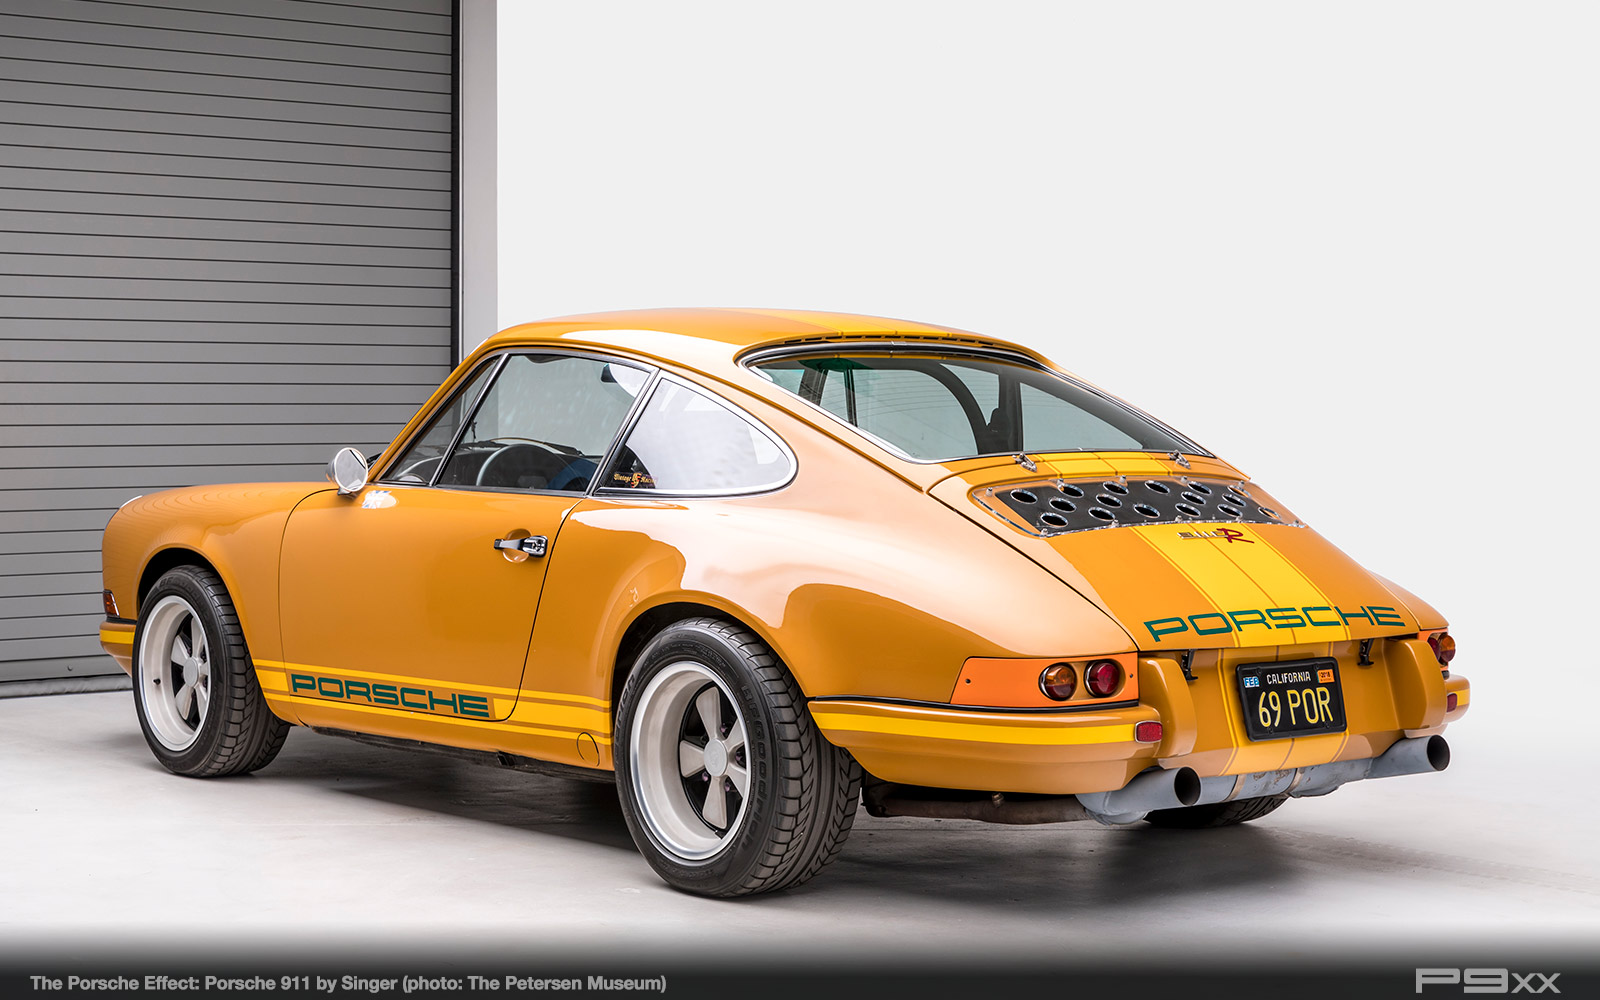 Singer-911-Petersen-Automotive-Museum-The-Porsche-Effect-290